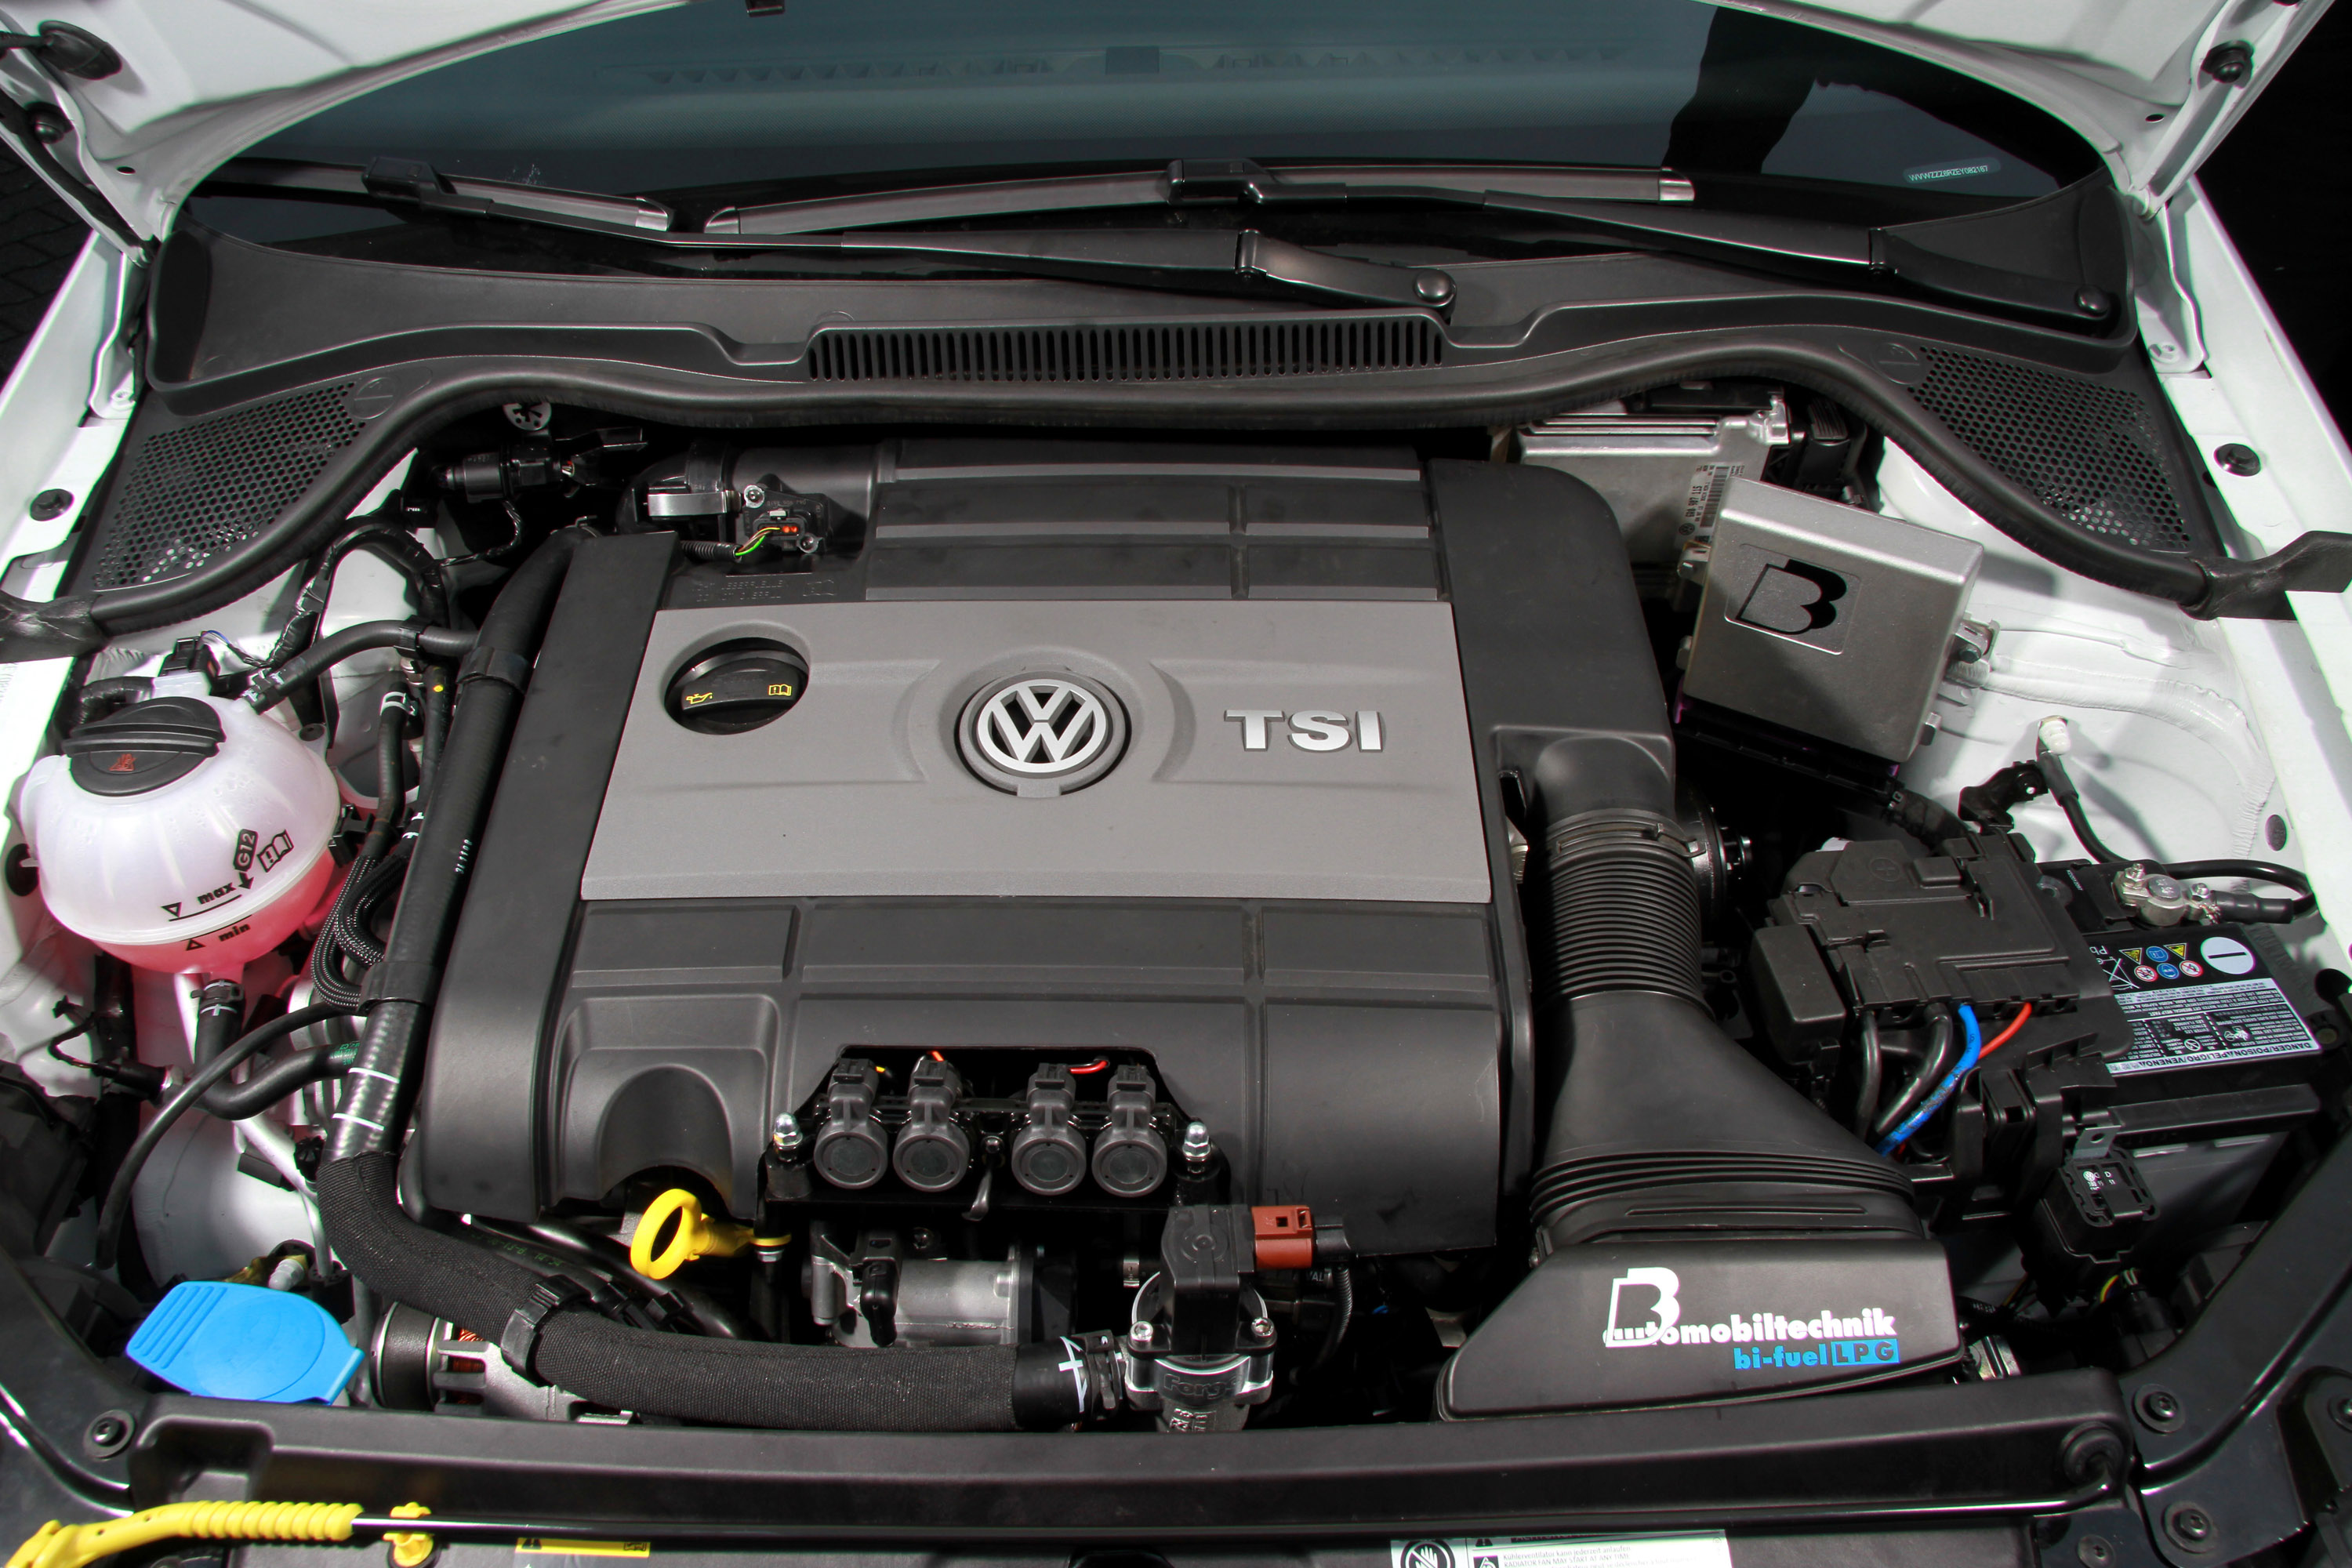 Car Tune Up Cost >> B&B Automobiltechnik Beef Up the Volkswagen Polo R WRC Street